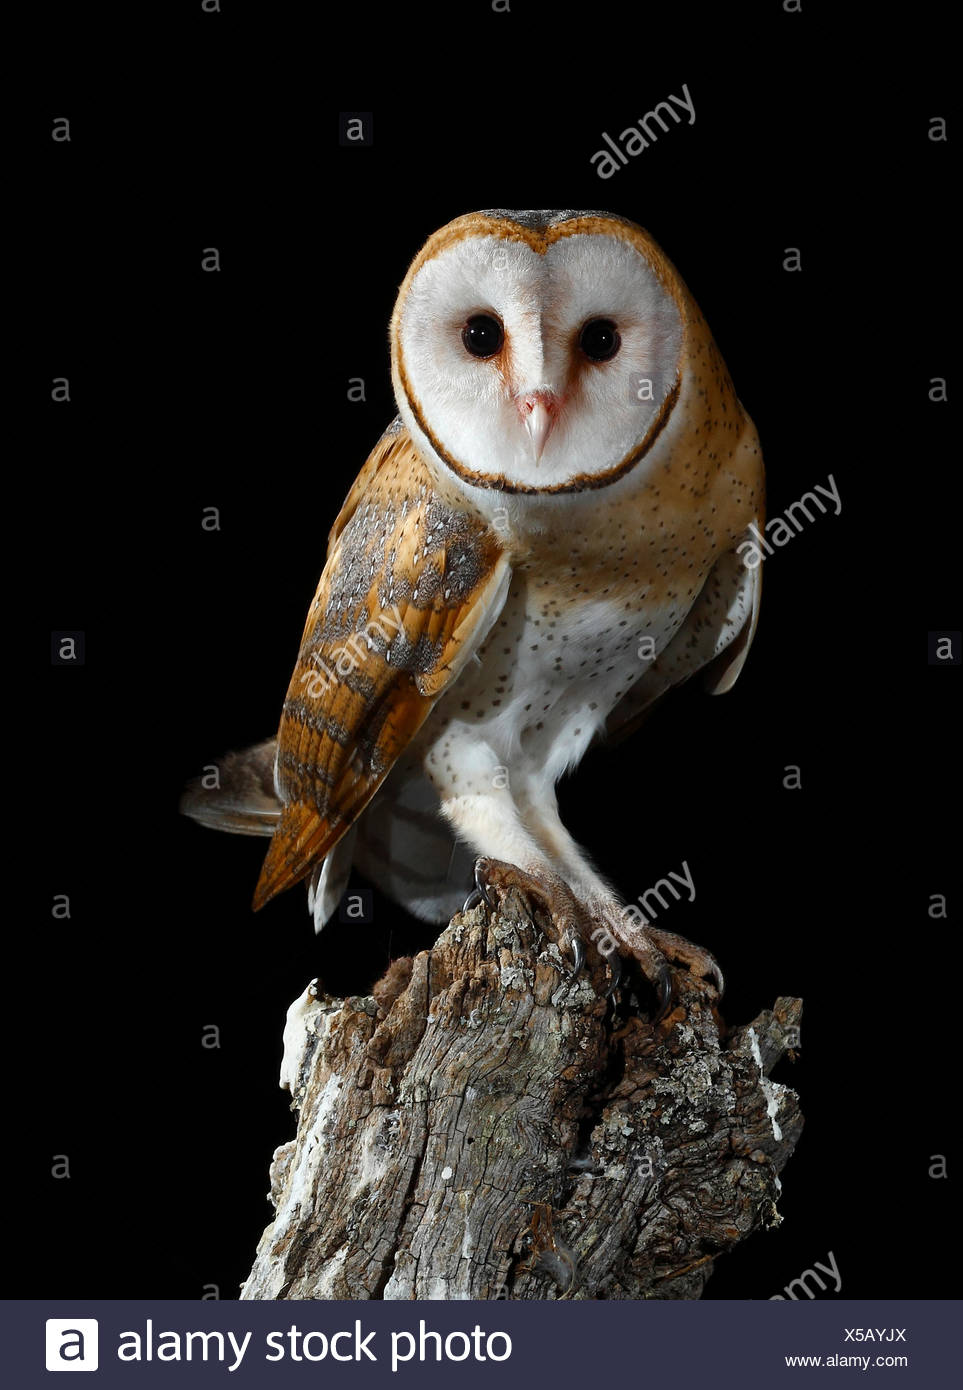 Barn owl coming toon a branch at night - Spain - Stock Image